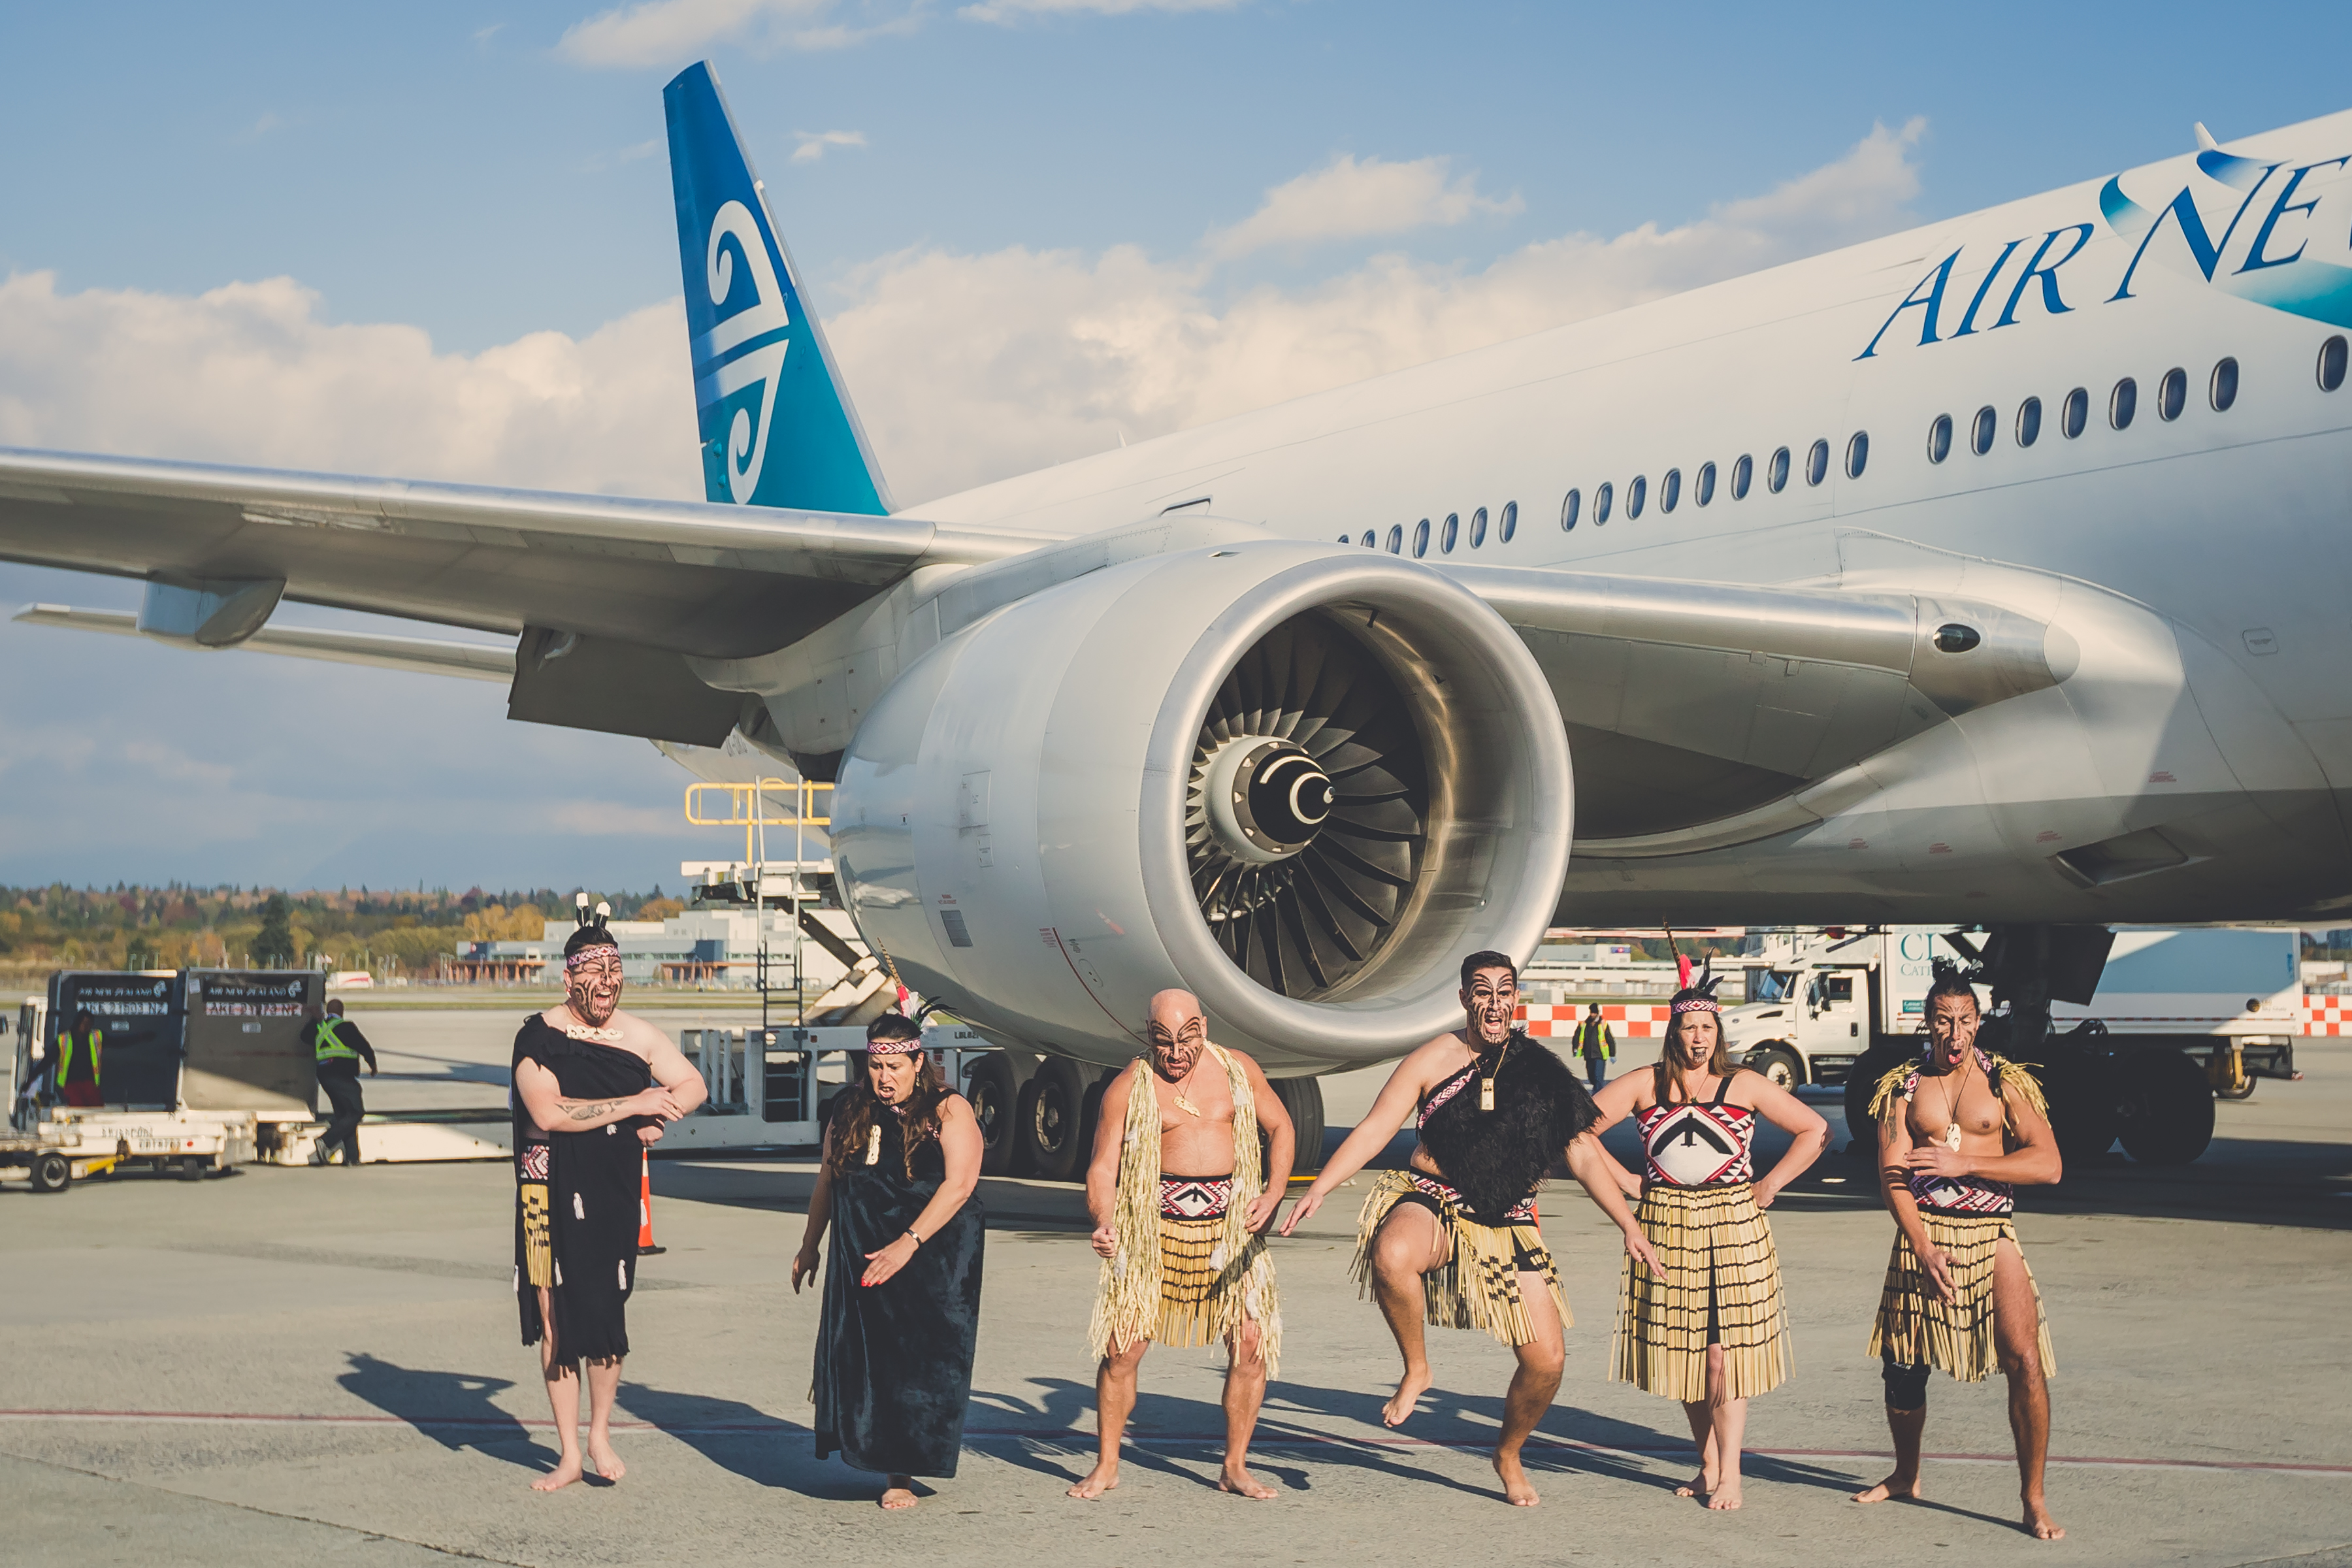 Air New Zealand Haka Performance Airside